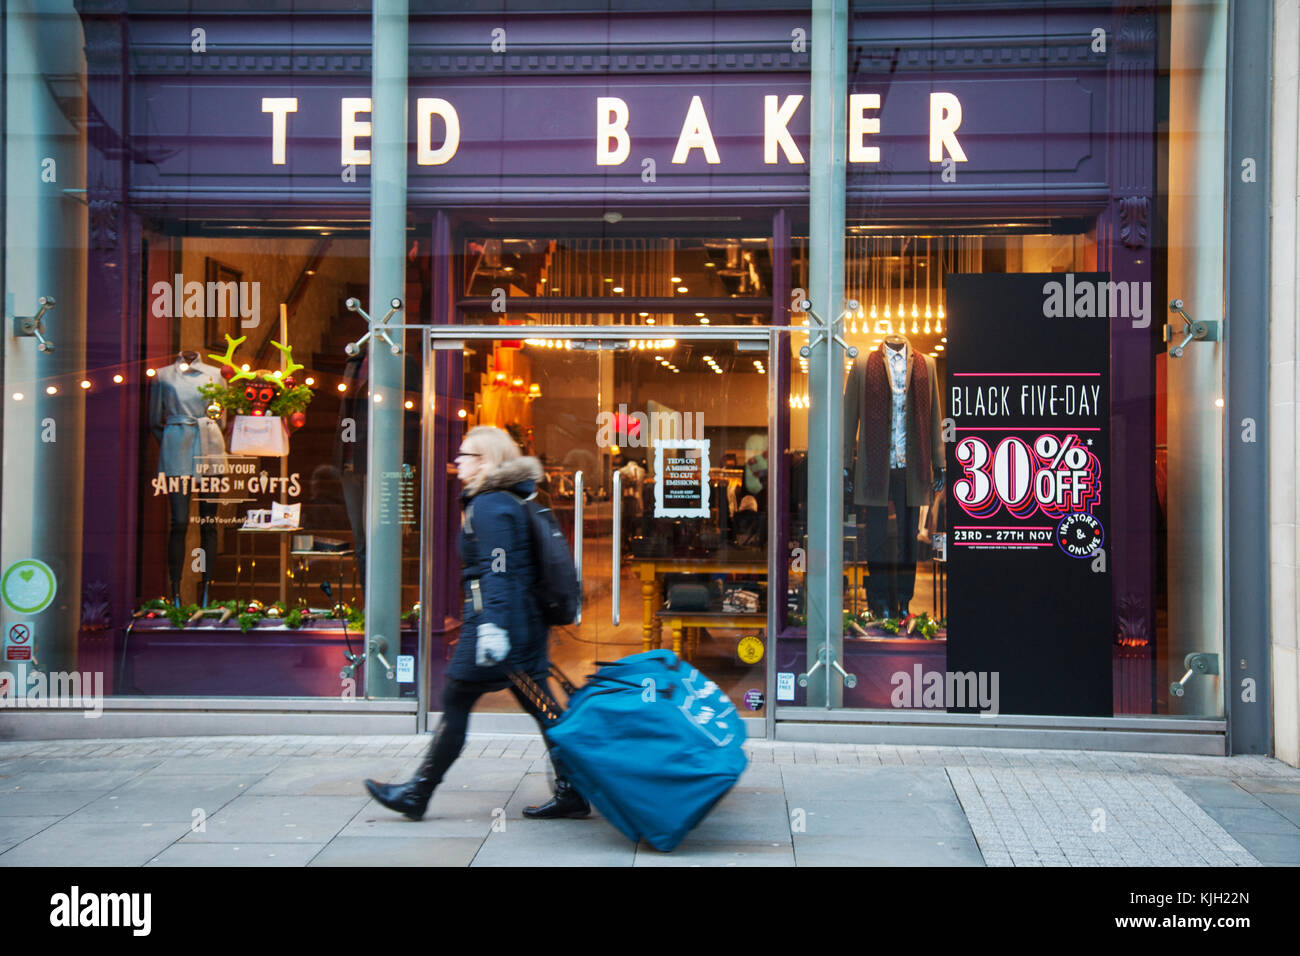 Ted Baker Store Stock Photos Amp Ted Baker Store Stock